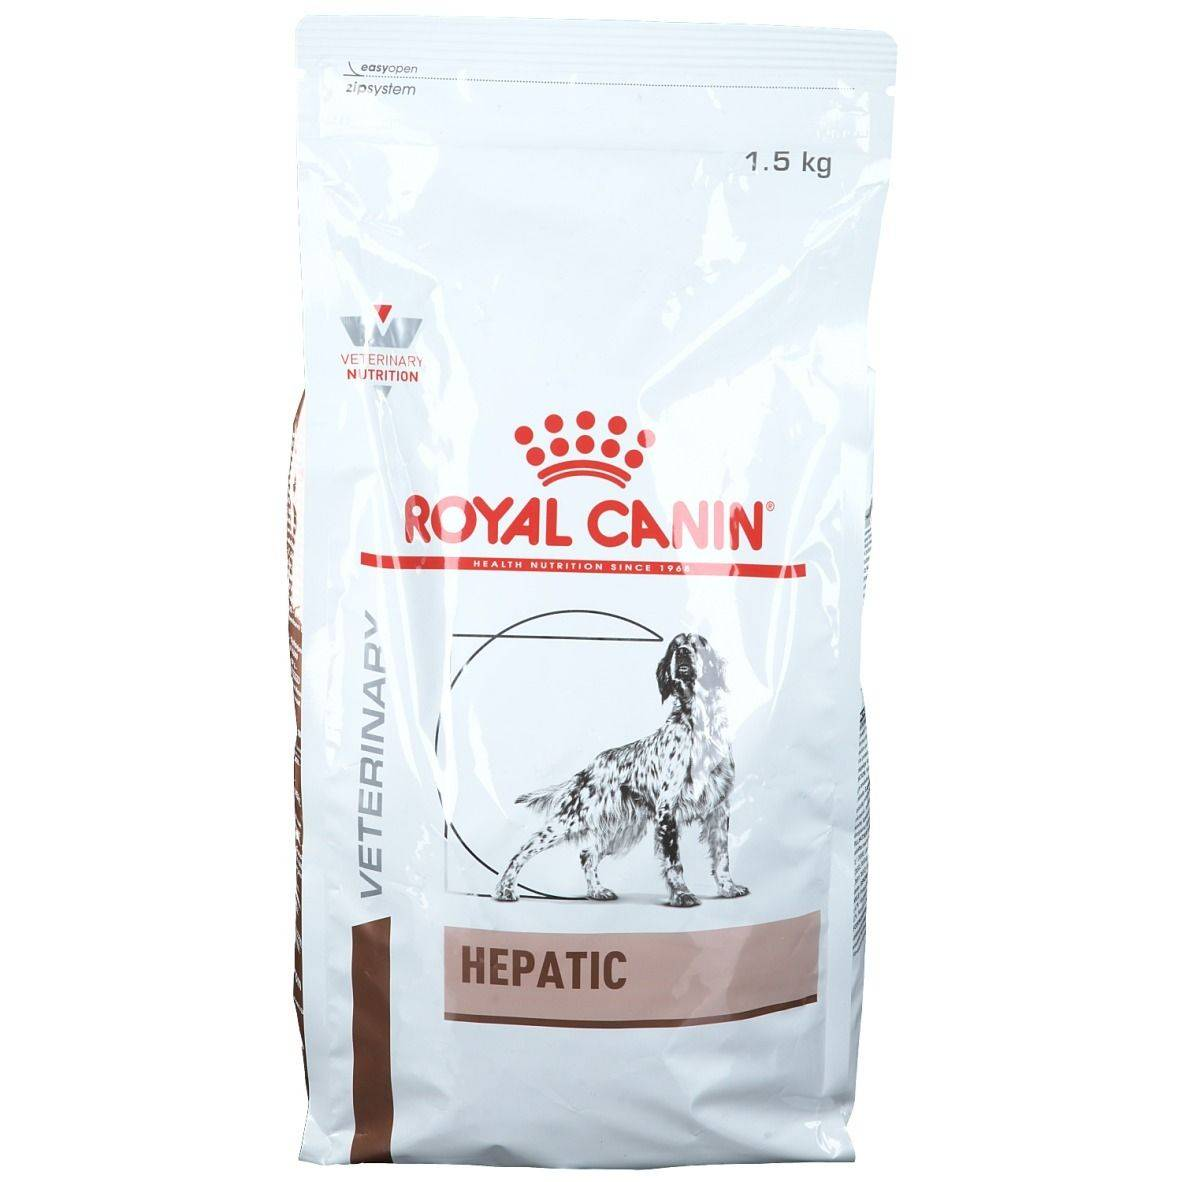 Royal Canin Hepatic Cane Adulto 1,5 kg Mangime